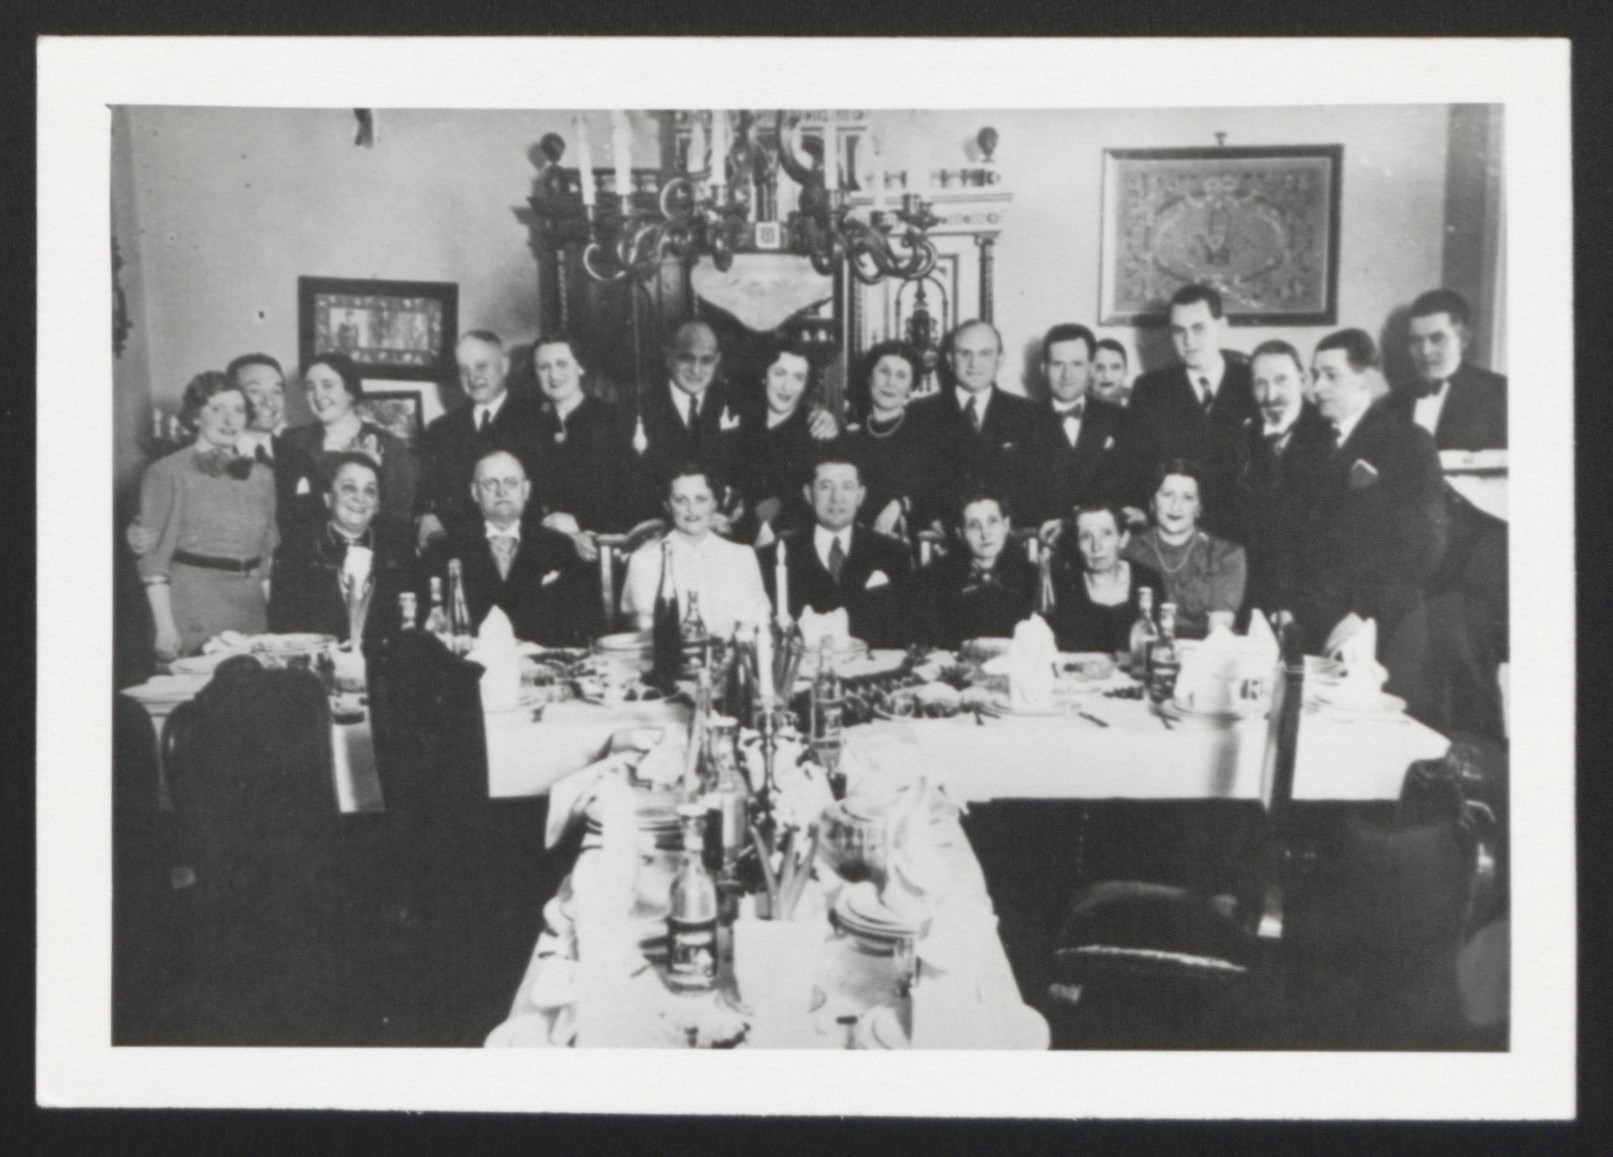 Wedding banquet for Ernest and Ernestine Merei held at the home of Ernestine's parents.